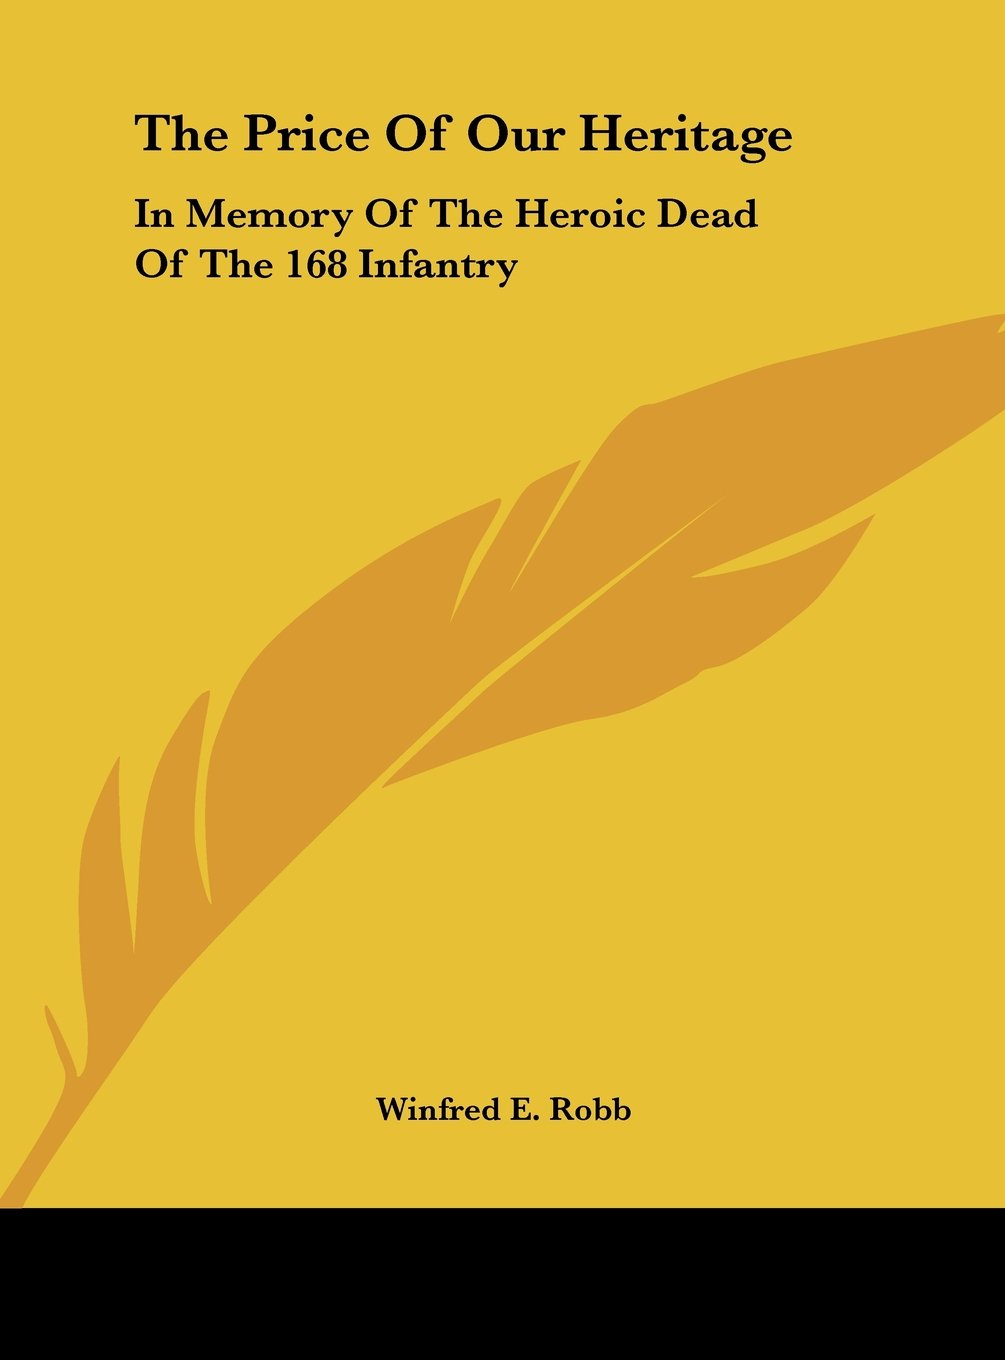 The Price Of Our Heritage: In Memory Of The Heroic Dead Of The 168 Infantry PDF